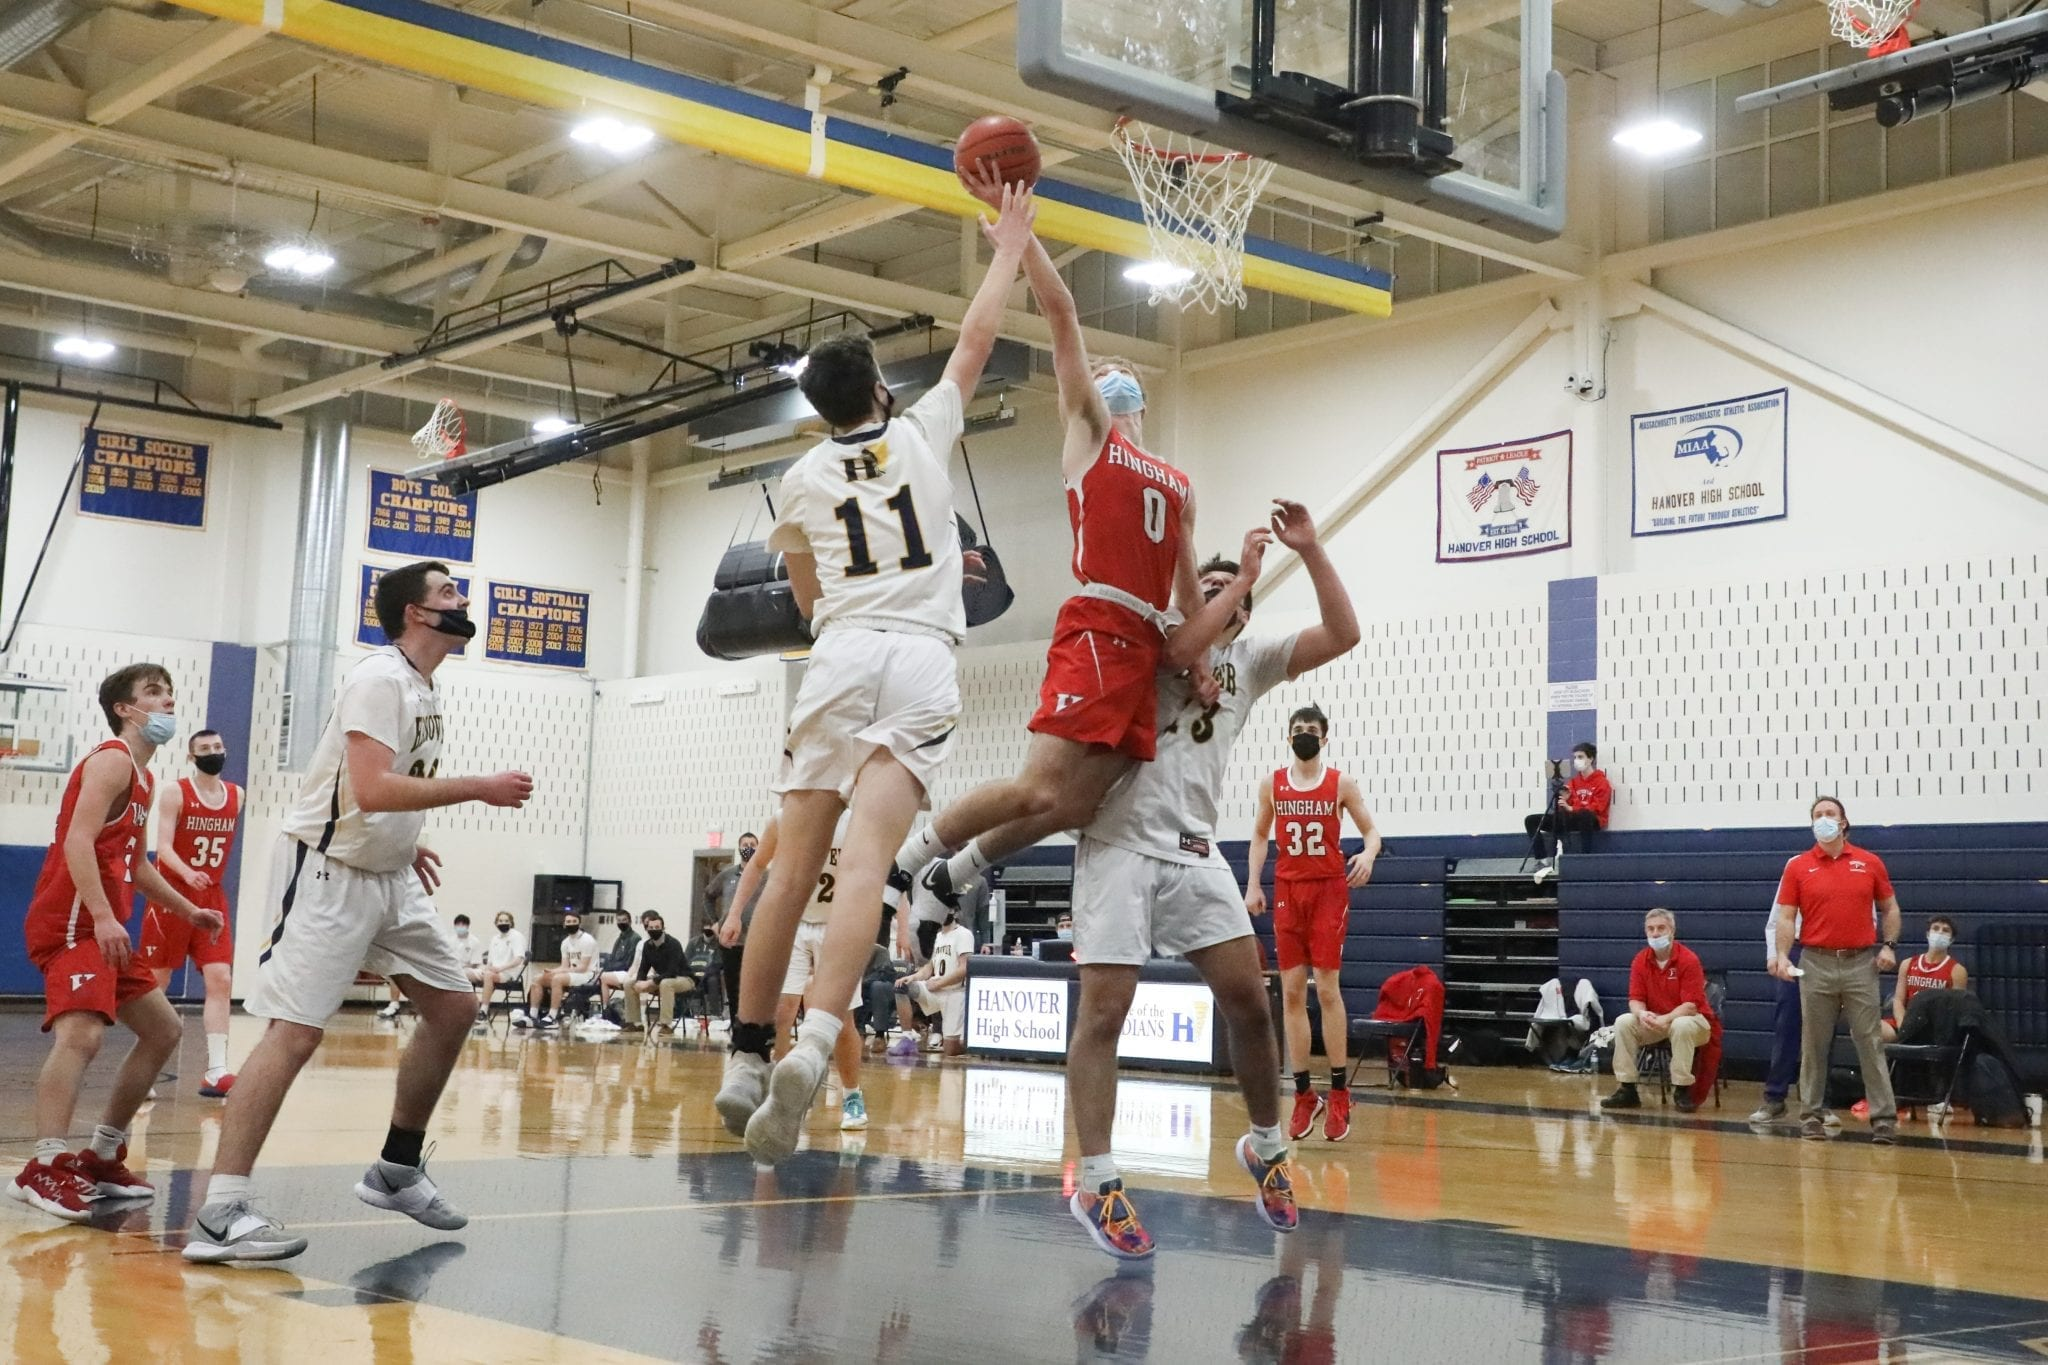 Senior captain Jack Hurley soars through the lane to tip in a rebound help to secure the victory for Hingham.